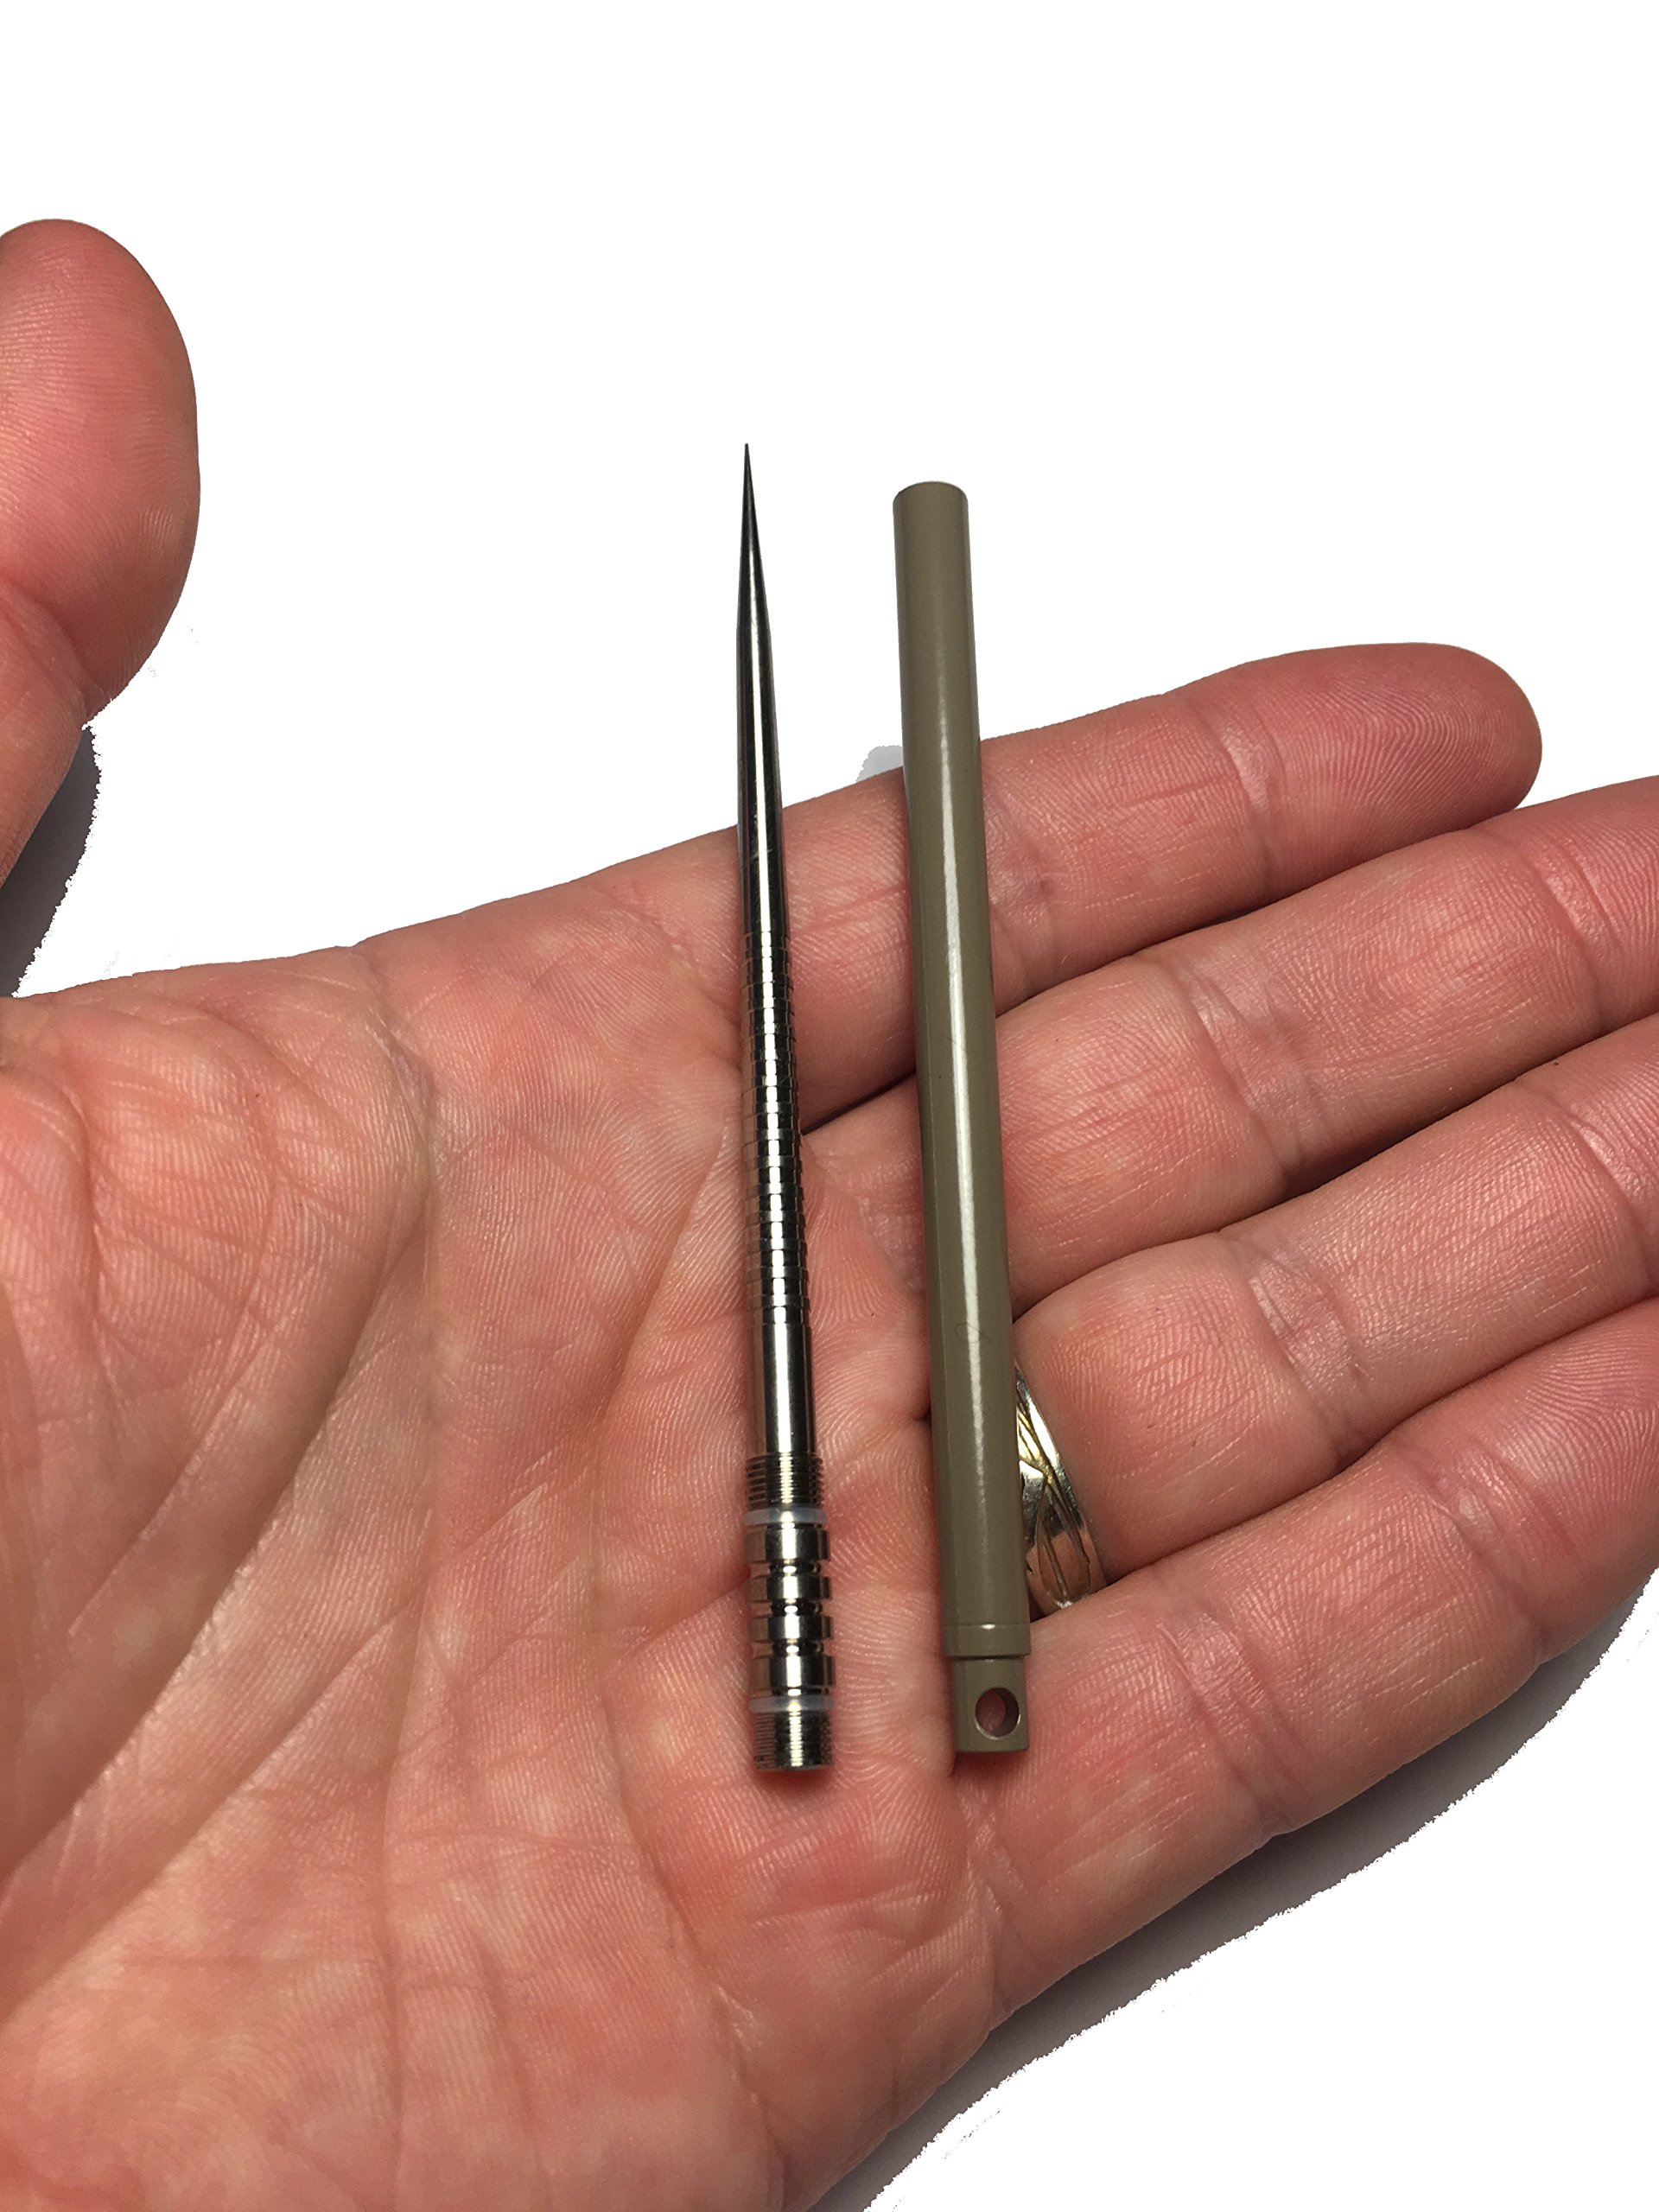 The Tan Solid Titanium 4'' EDC Ice Pick with protective case handle keychain - Empire Tactical USA